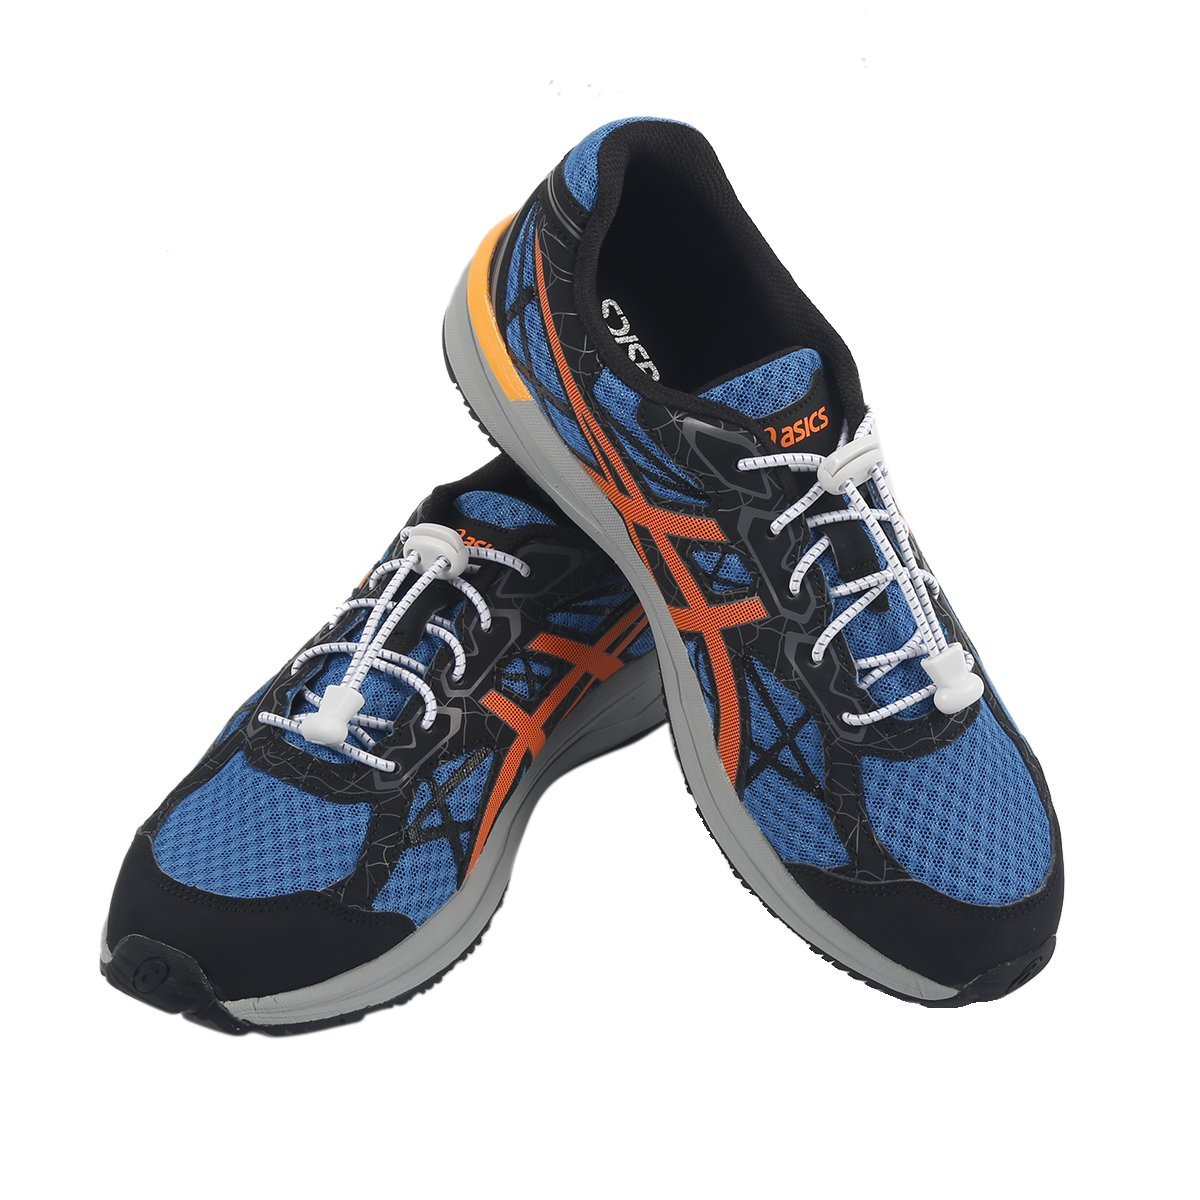 9ab13be3011d66 Get Quotations · No Tie shoelaces Newsight Tieless shoelaces Stretch  shoelaces Best in Sports Fan Shoelaces Round Shoelaces for